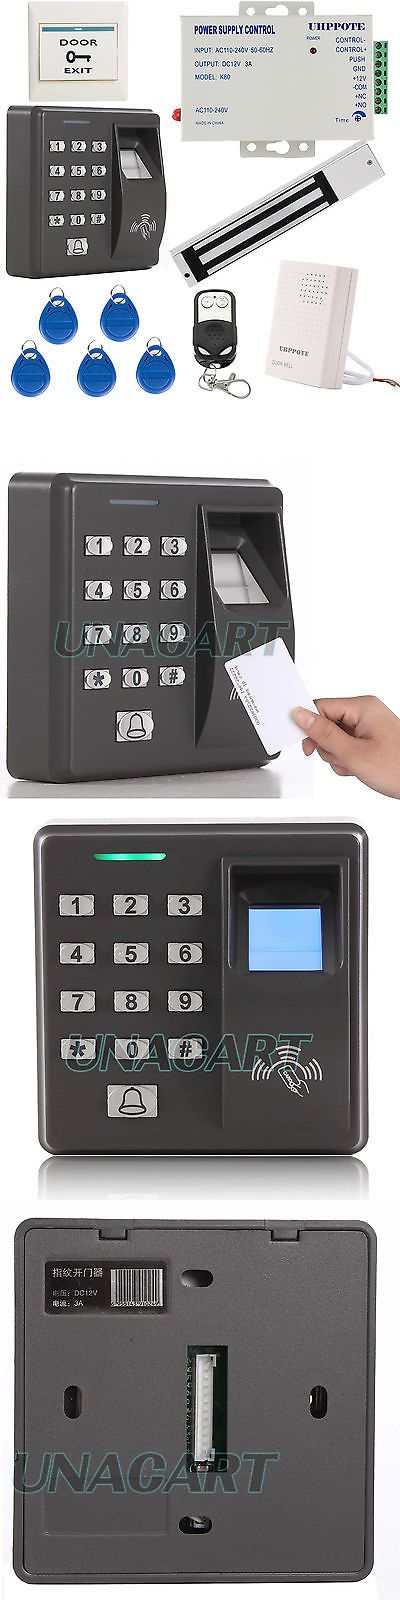 Intercoms and Access Controls: Fingerprint And Rfid Id Card Access Control Unit Kit W/ 600Lbs Force Magnetic Lock BUY IT NOW ONLY: $139.0